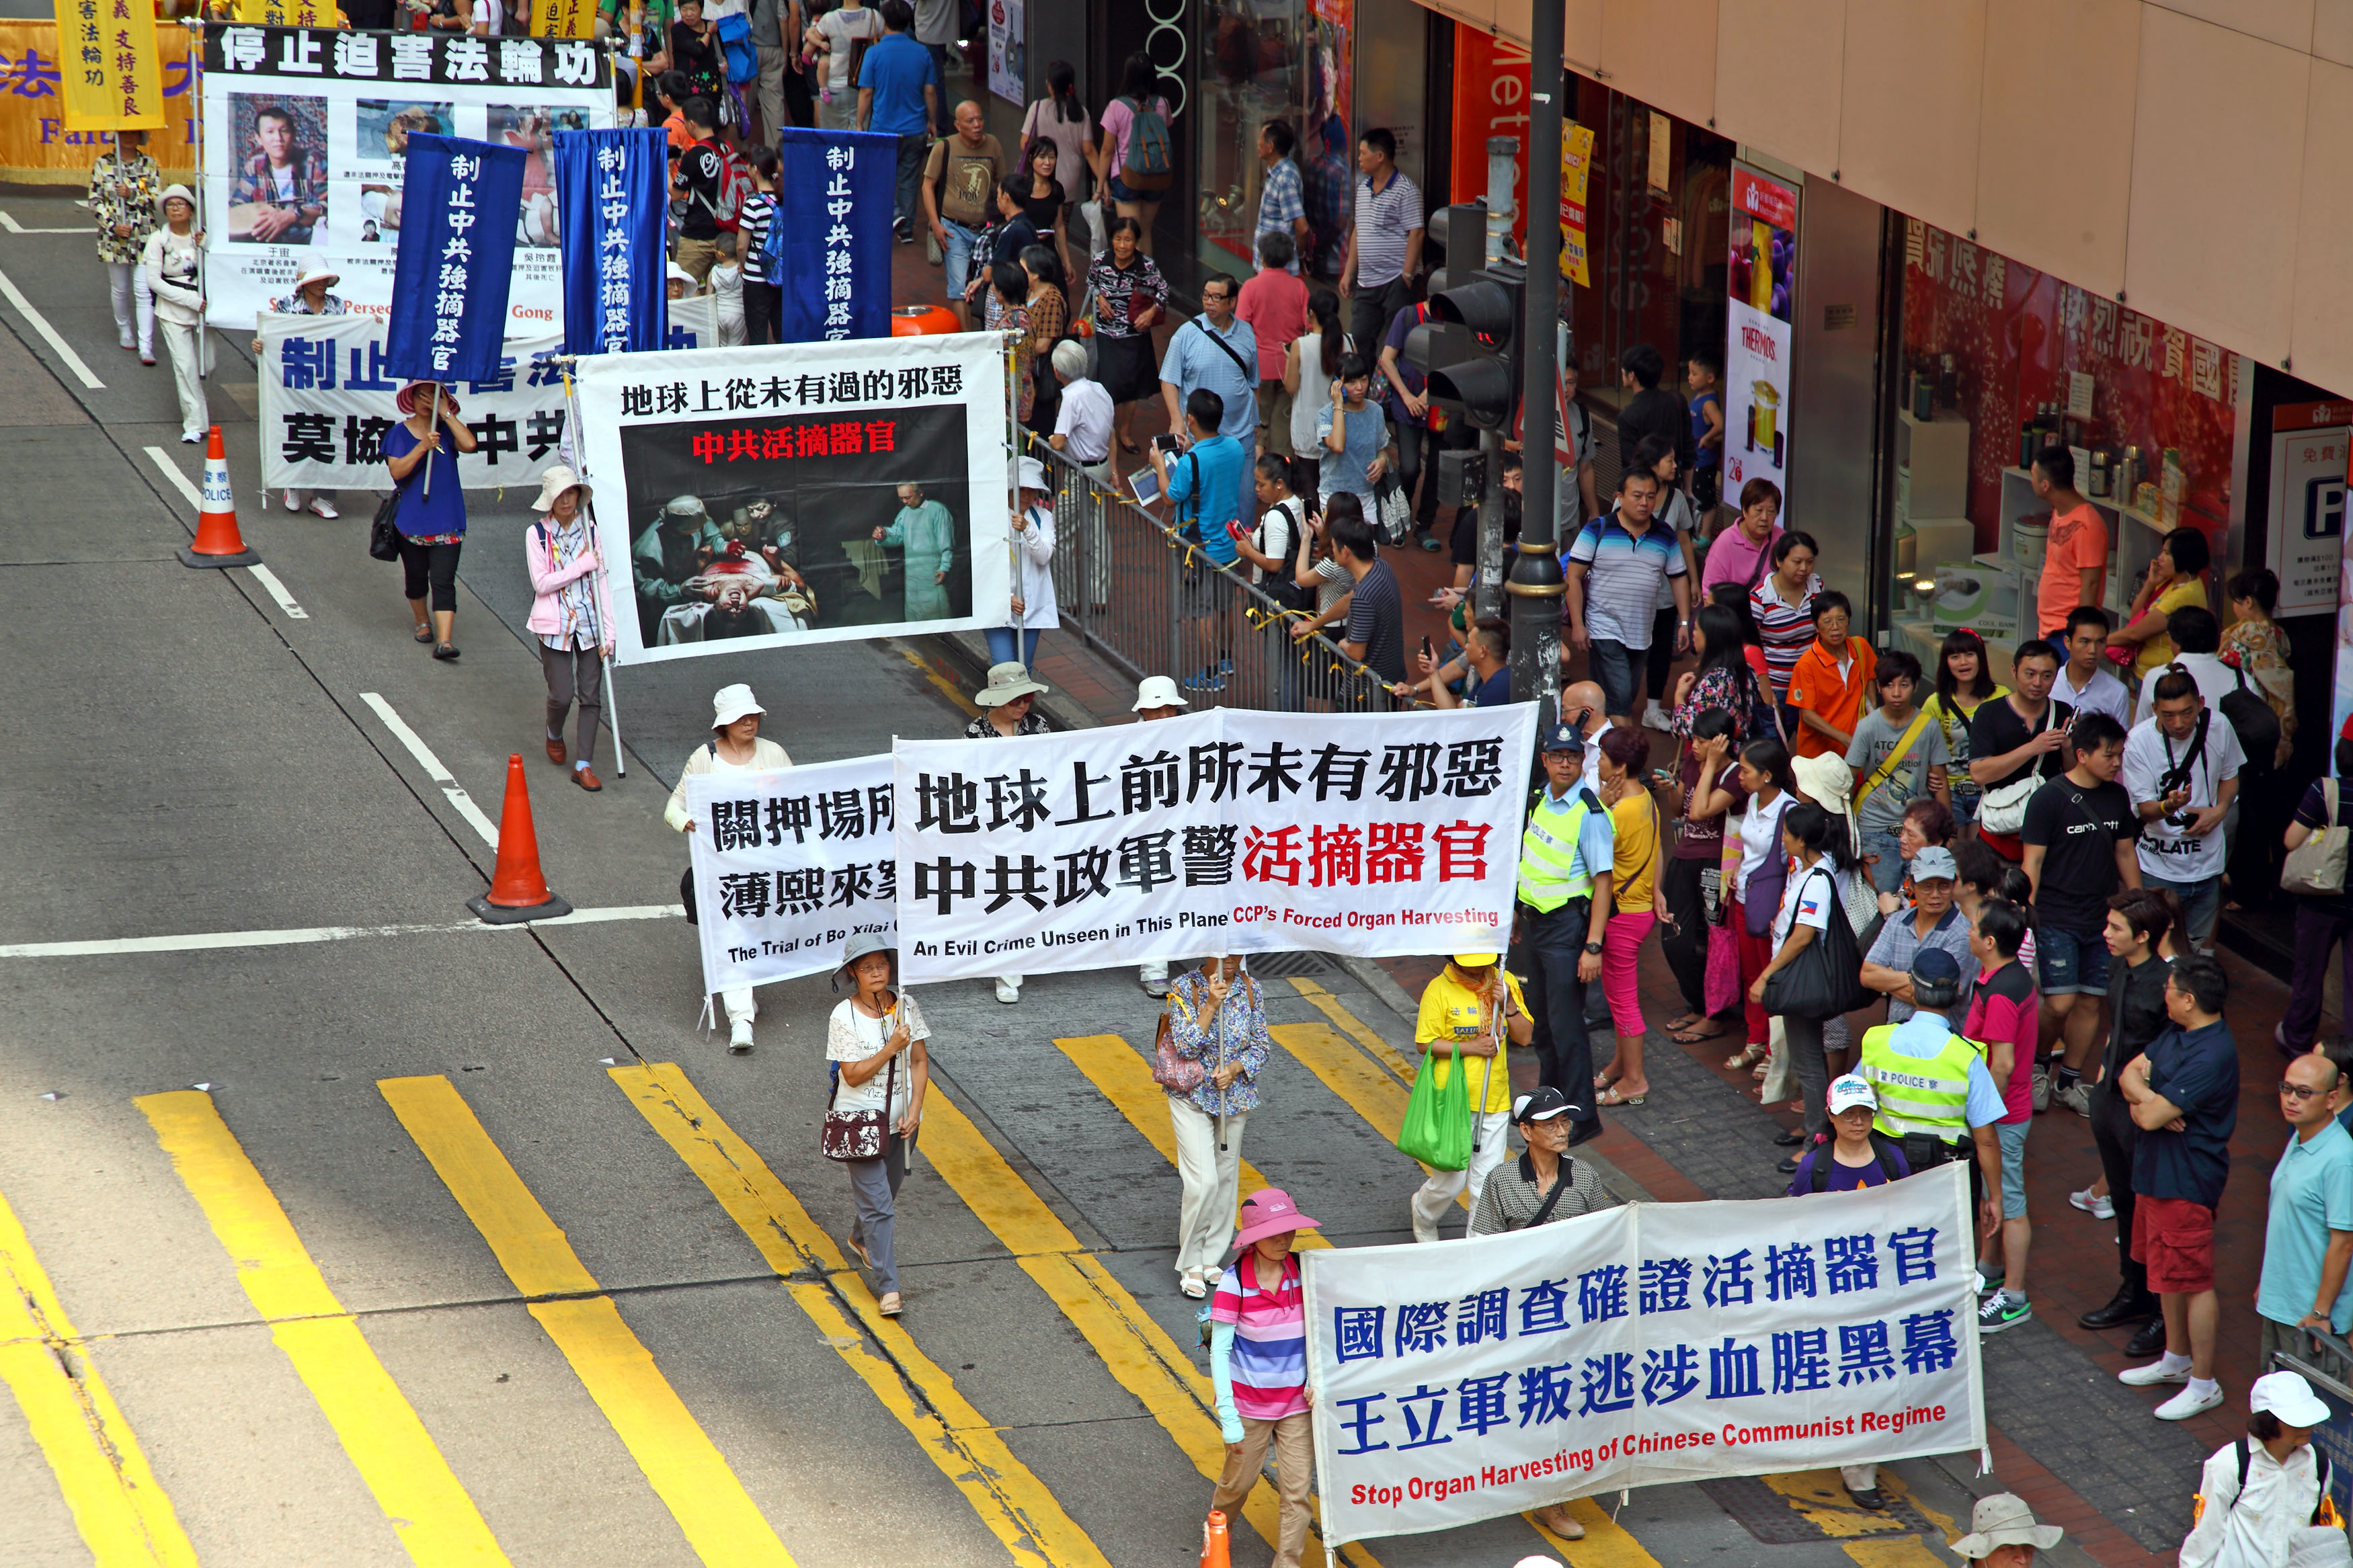 an analysis of the paper falun gong protest mars chinas national day Tensions culminated in april 1999, when over 10,000 falun gong practitioners gathered peacefully near the central government compound in beijing to request legal recognition and freedom from state interference.